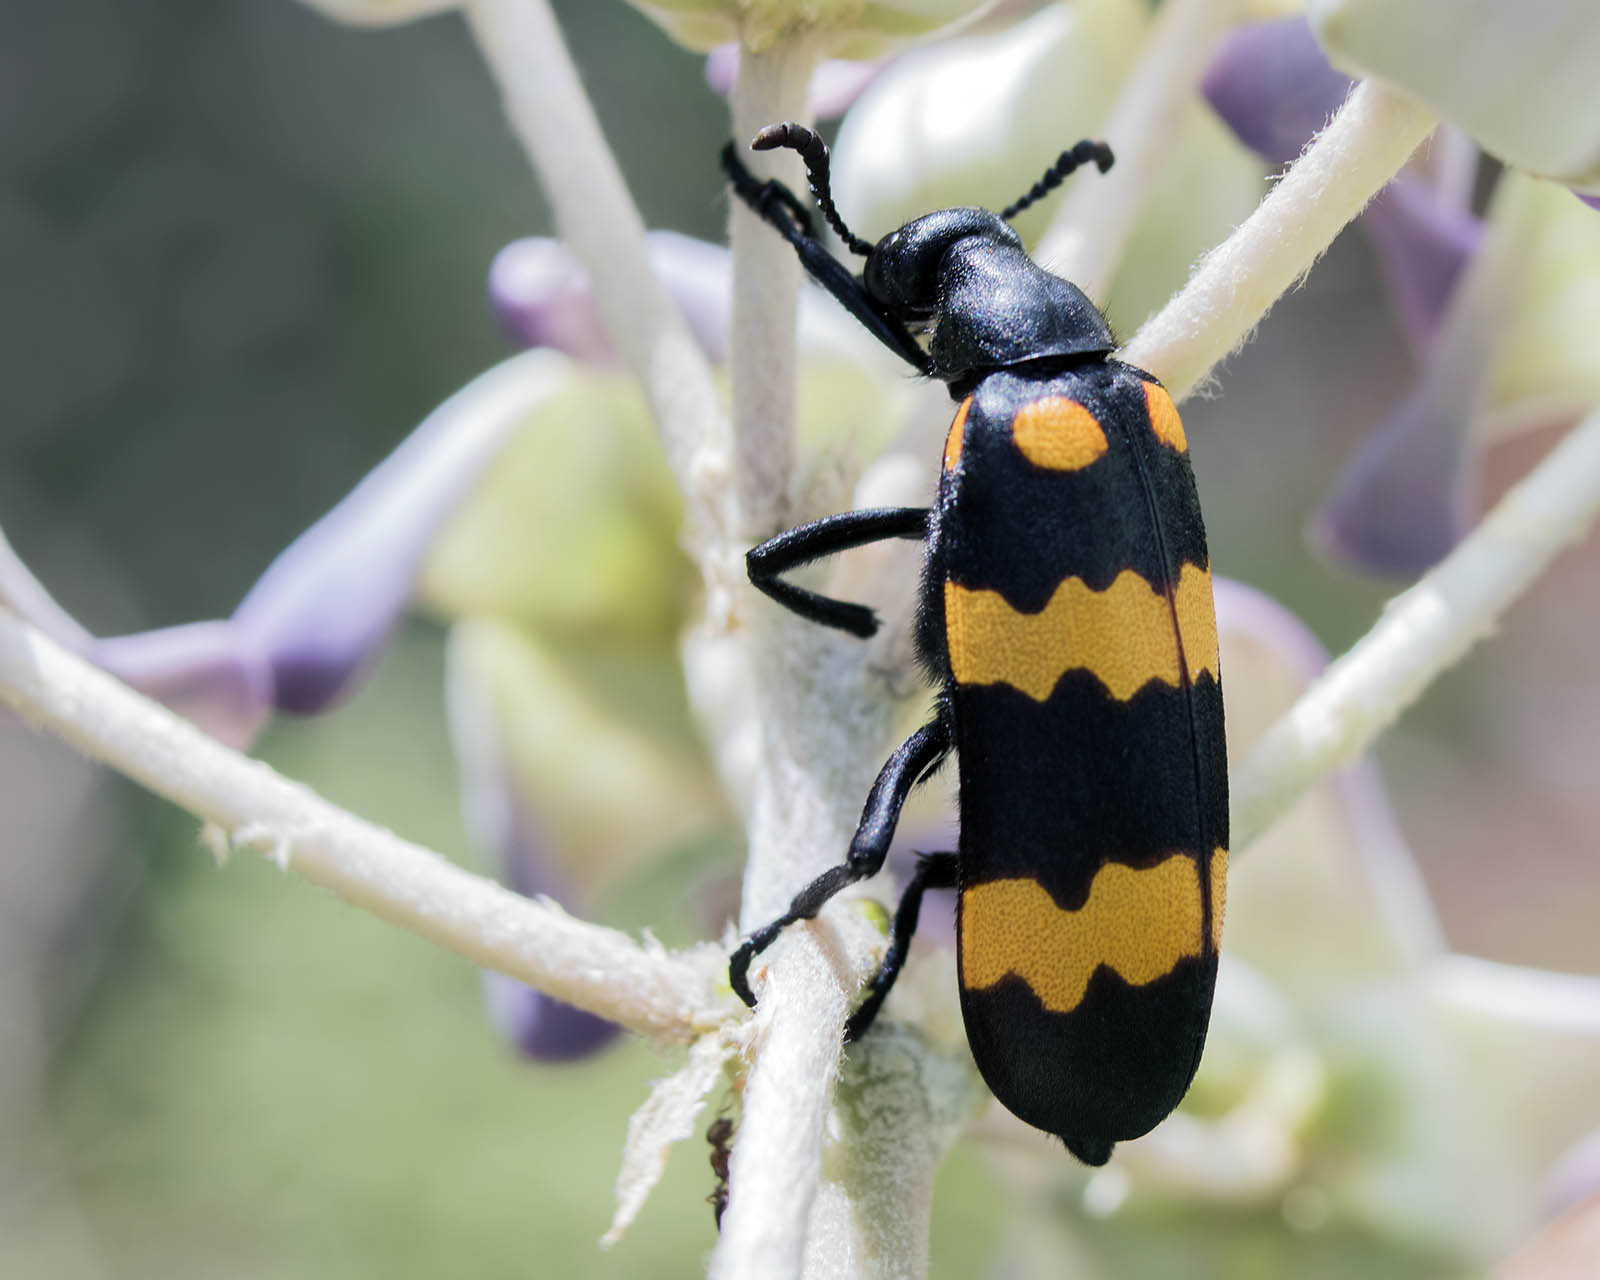 File:Blister beetle (26390828032) jpg - Wikimedia Commons